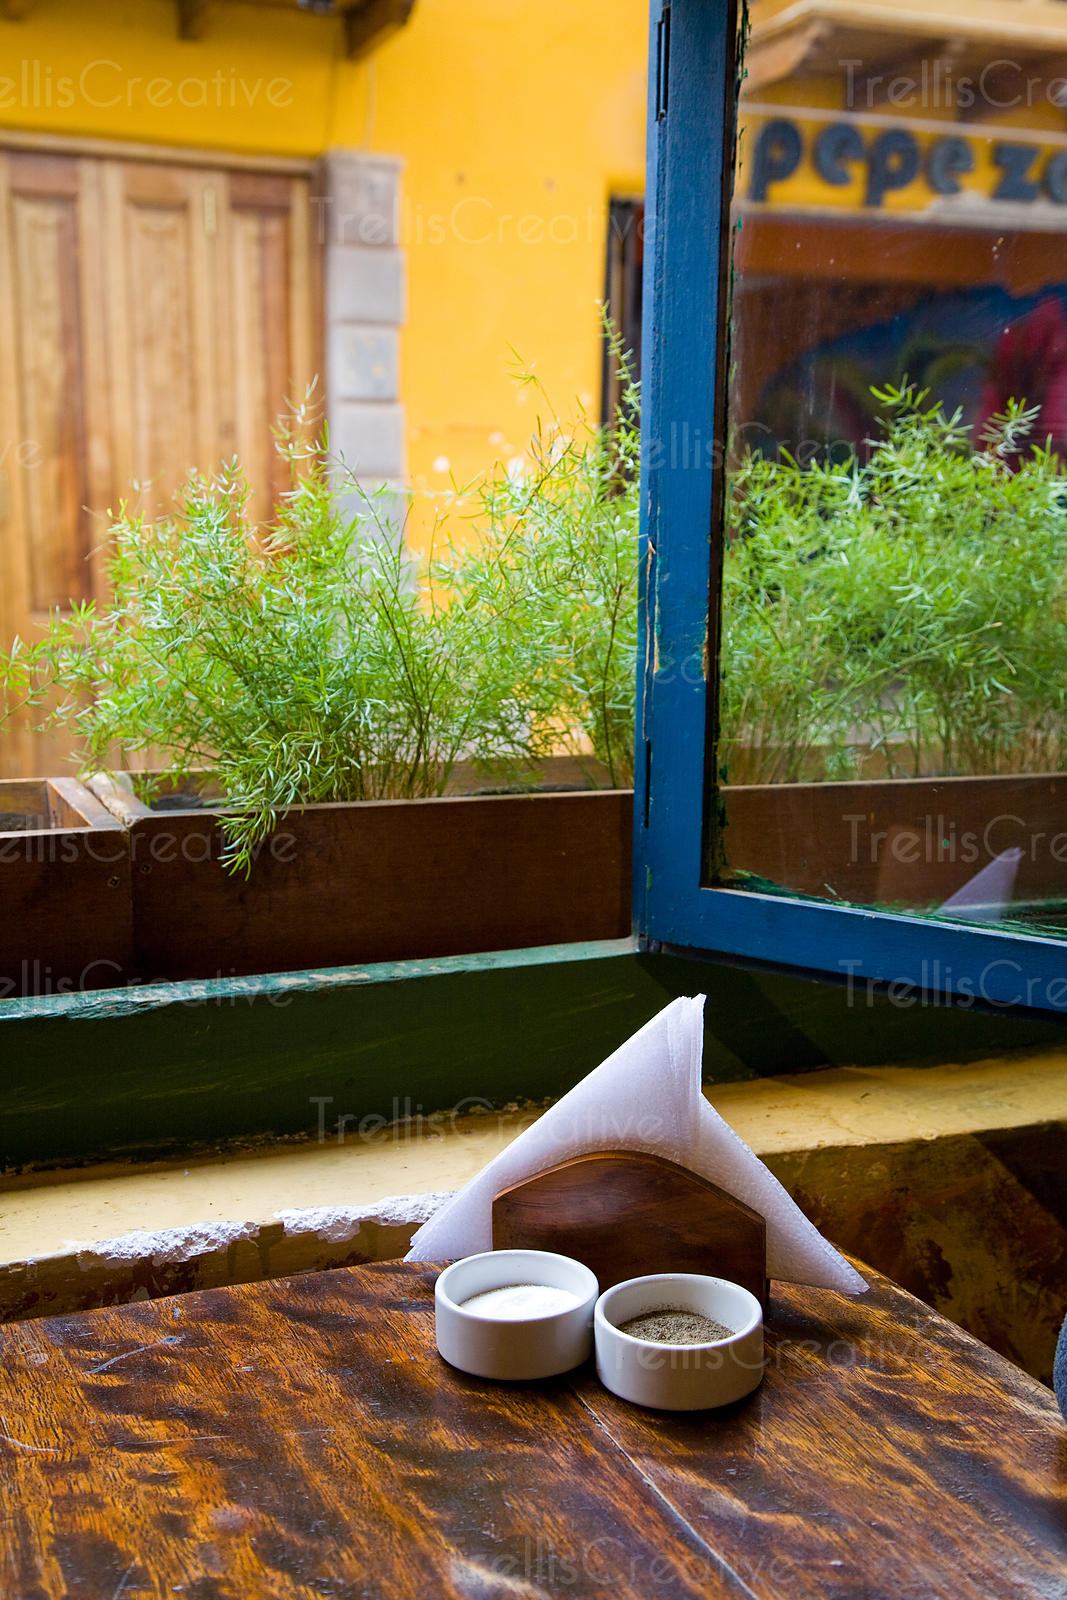 Napkin holder, salt and pepper sit on wooden table in front of open window of cafe